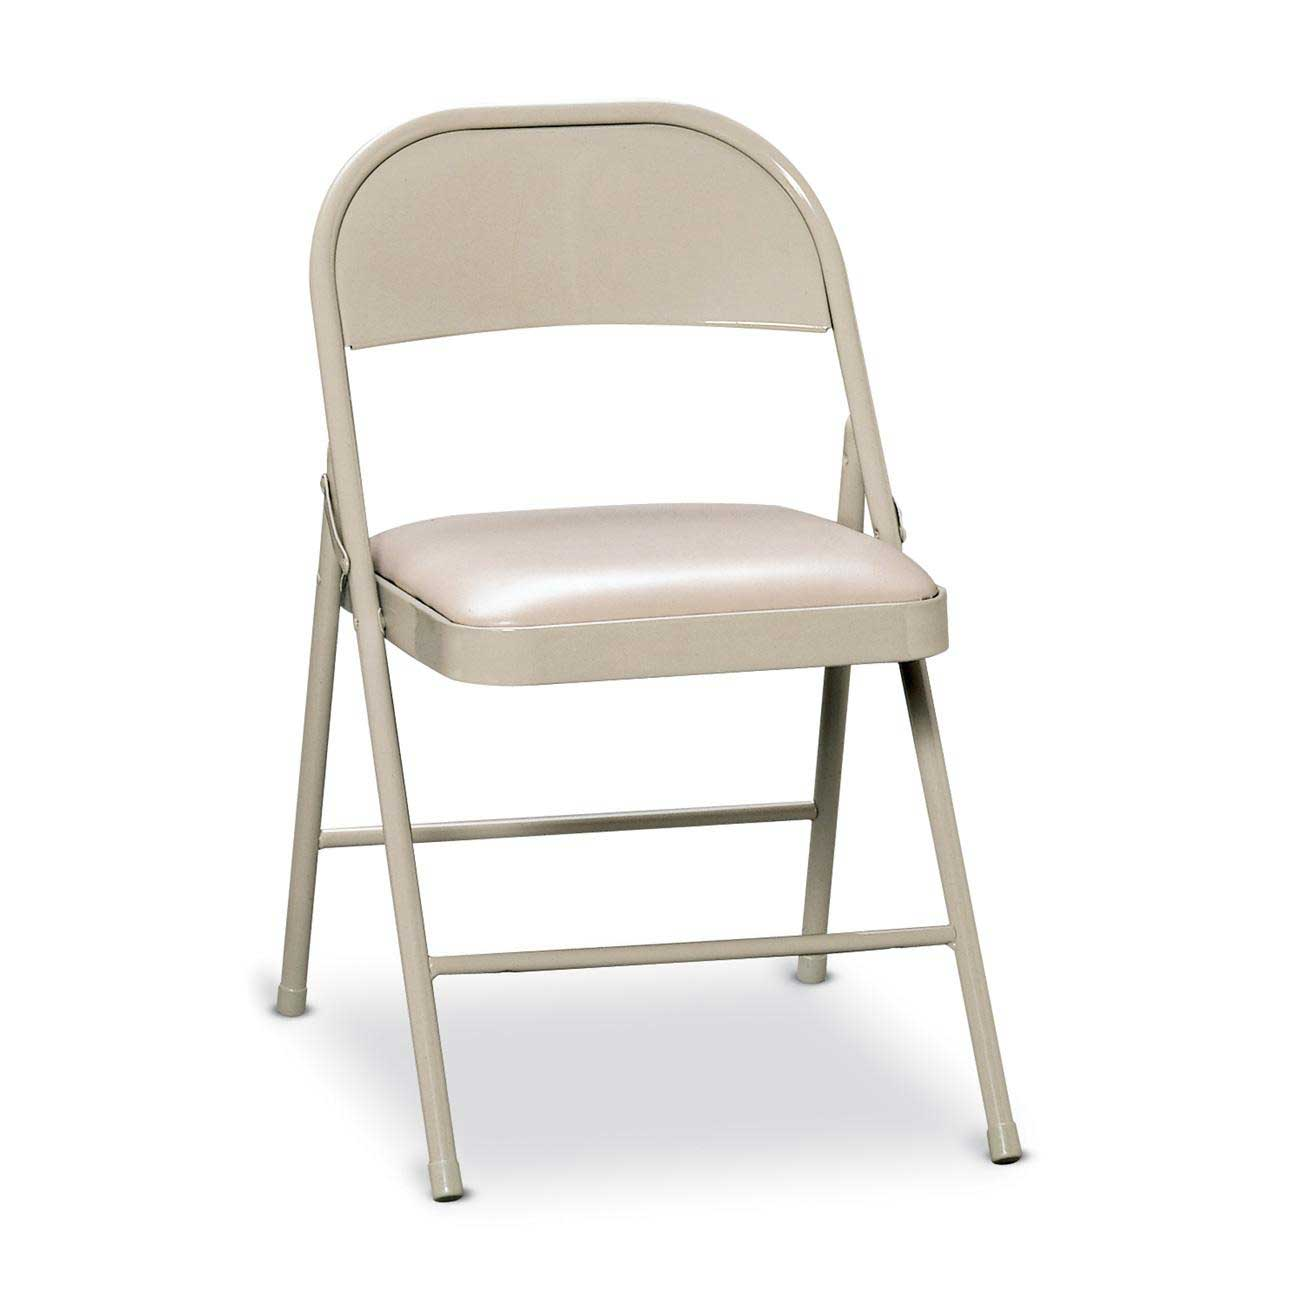 Folding Padded Chairs Style And Design on home depot office chairs